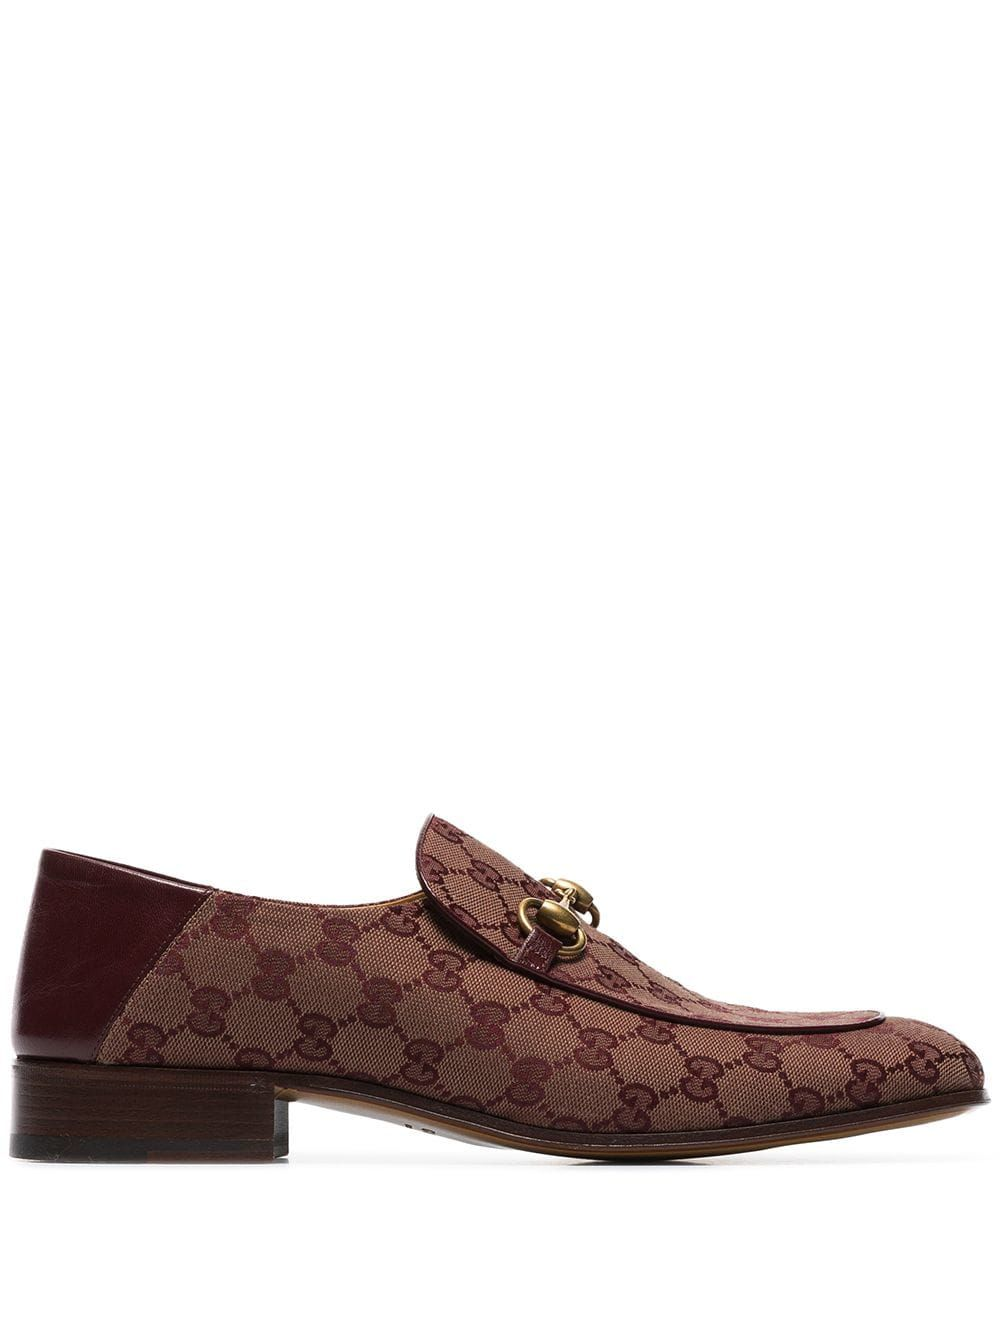 d6fe2aa35ae GUCCI GUCCI MISTER HORSE-BIT LOGO LOAFERS - RED.  gucci  shoes ...